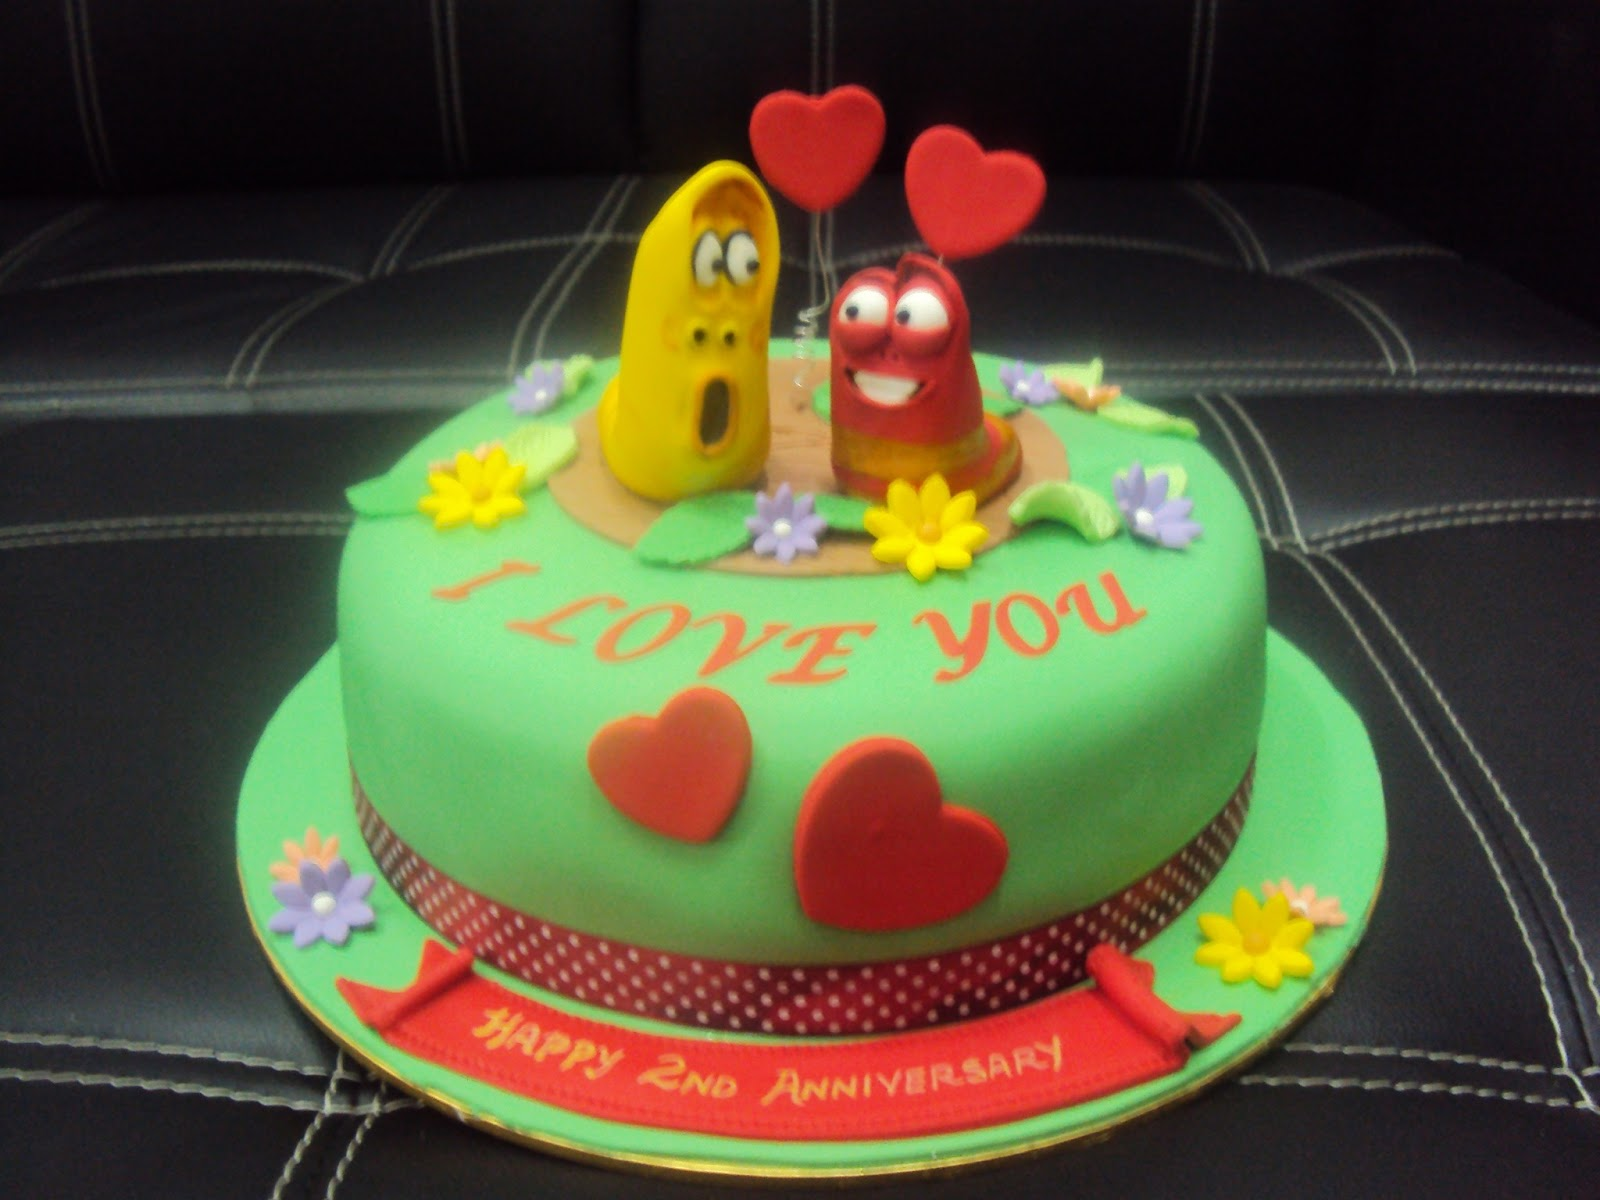 Larva Cartoon Cake Design : L mis Cakes & Cupcakes Ipoh Contact : 012-5991233 ...